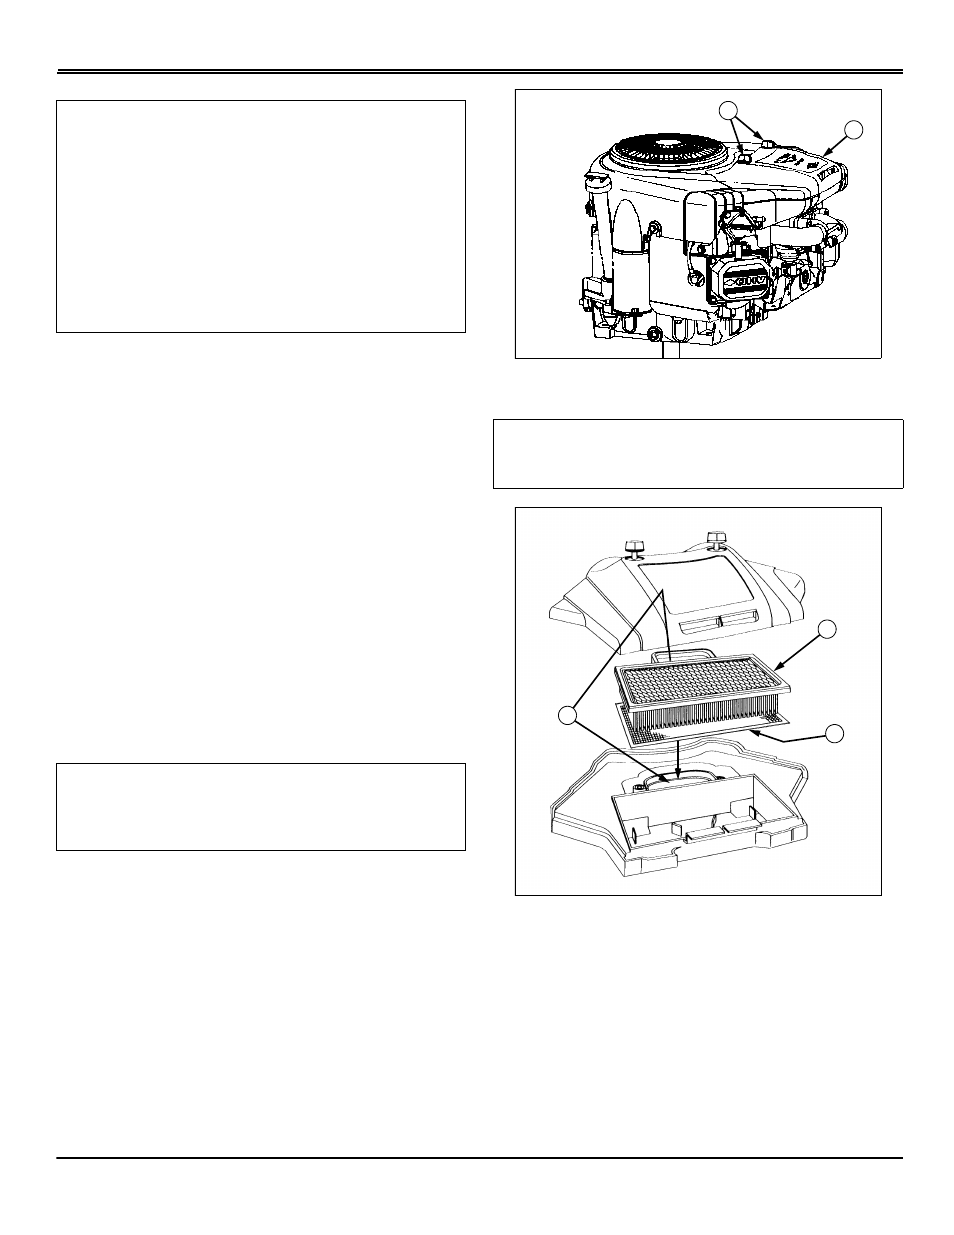 Air cleaner elements - s2046, Service engine   Scotts S1642 User Manual    Page 34